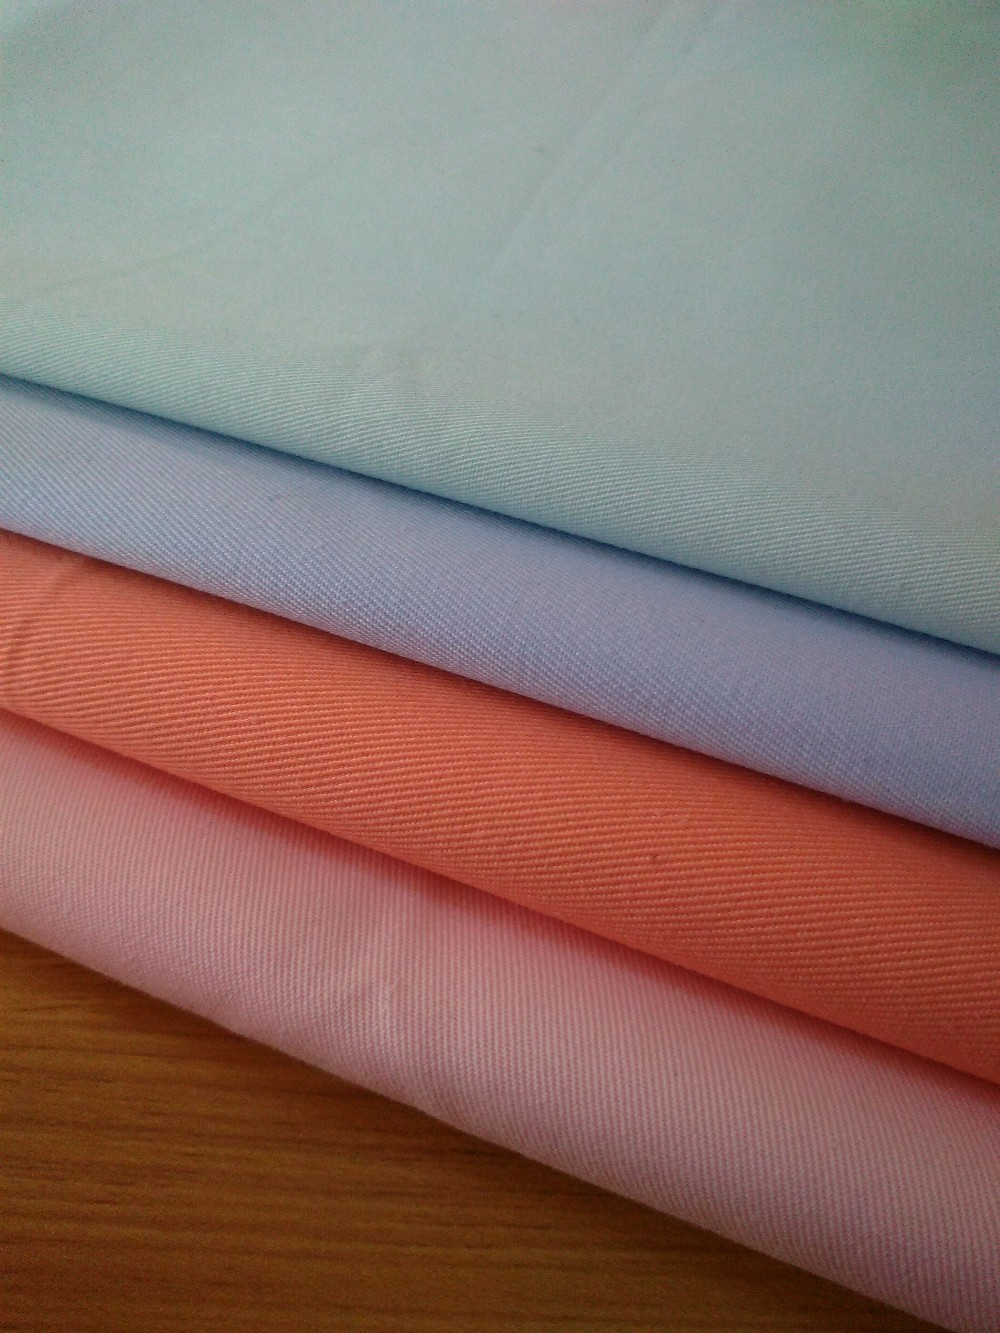 twill fabric price